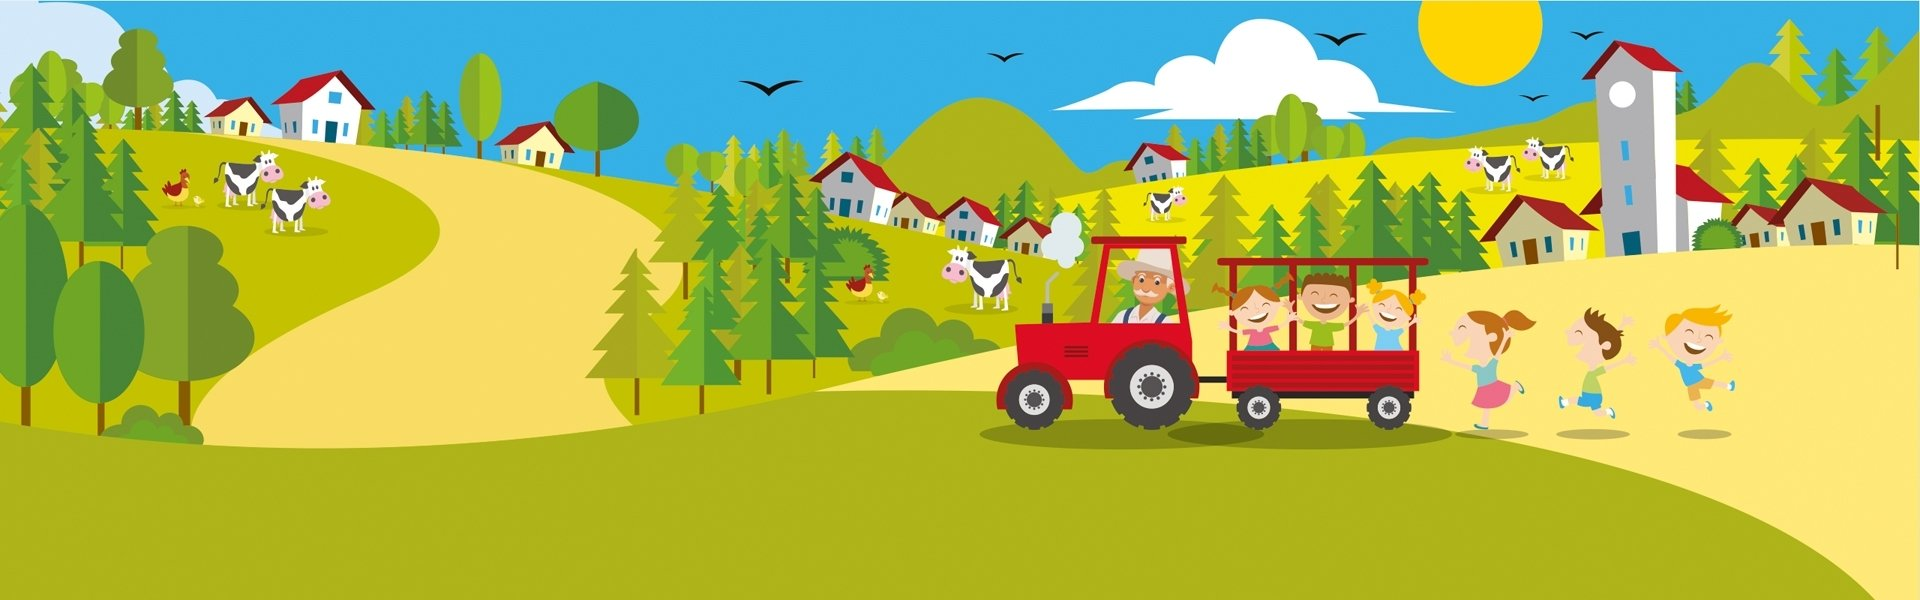 Tractor-tour